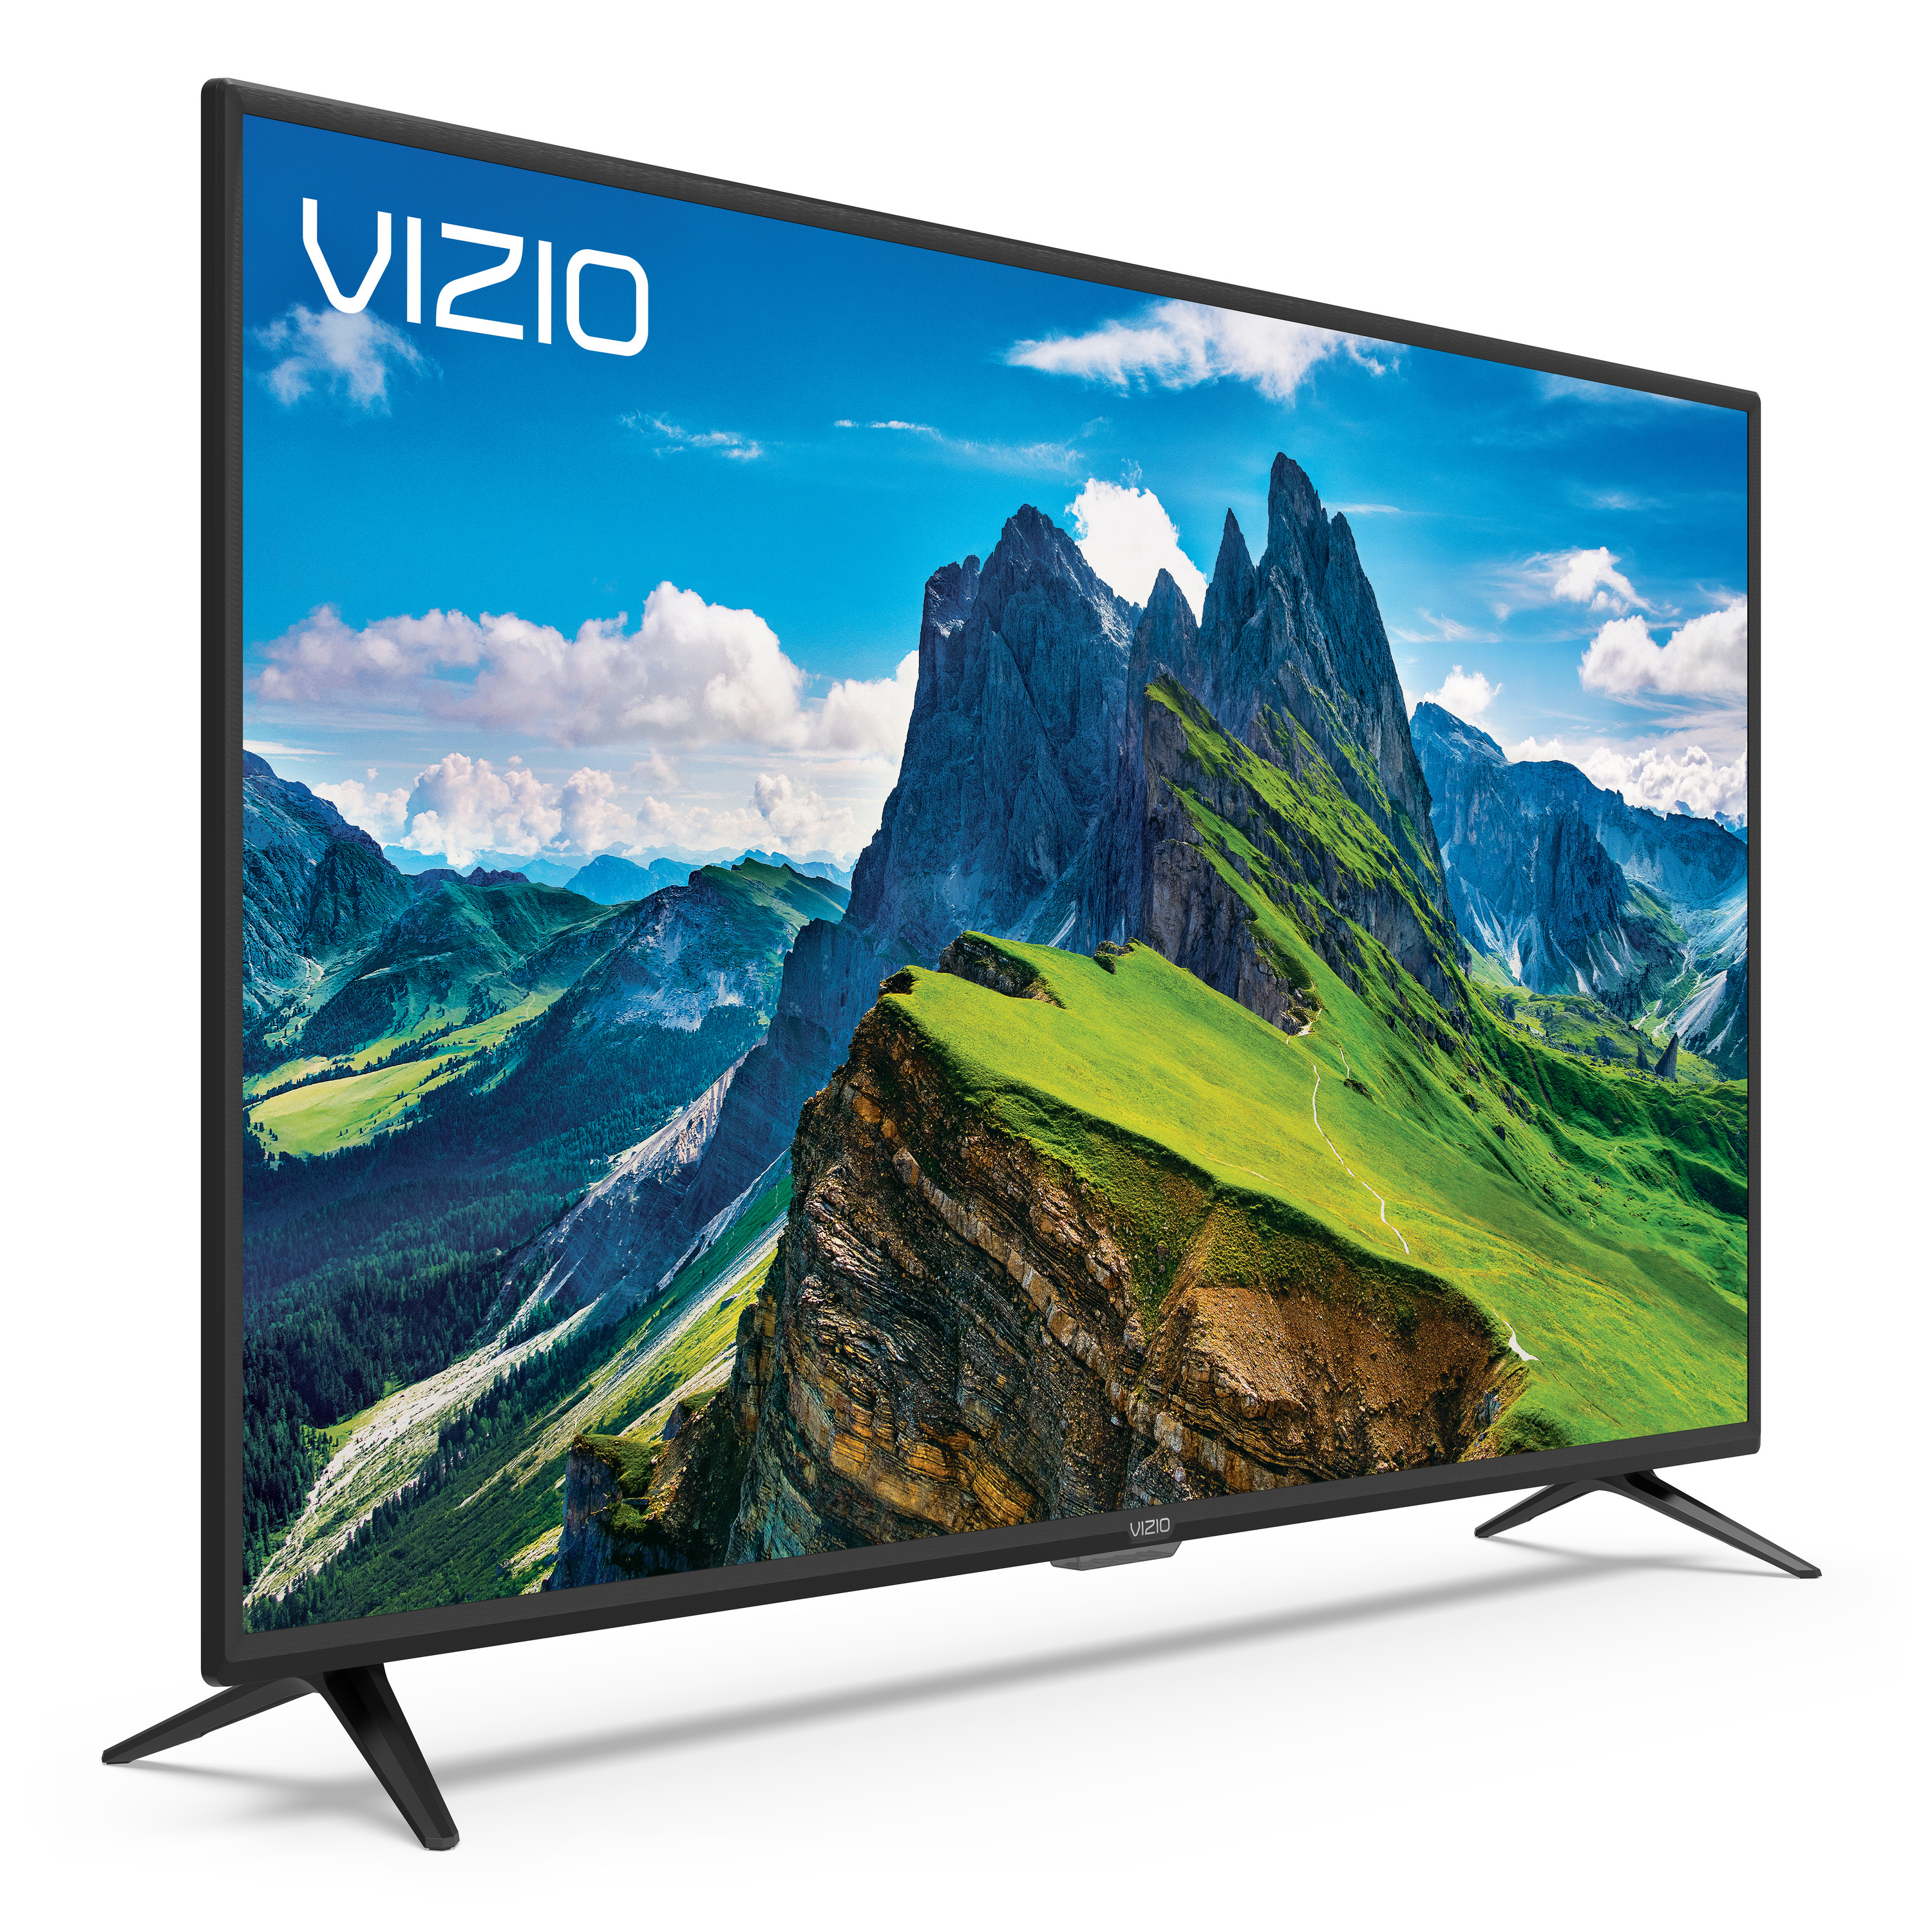 Cheap 4k Tv Deal Get The Vizio 55 Inch Smart Tv On Sale For 0 At Walmart Project 365 202 Lounging At Nan S Place